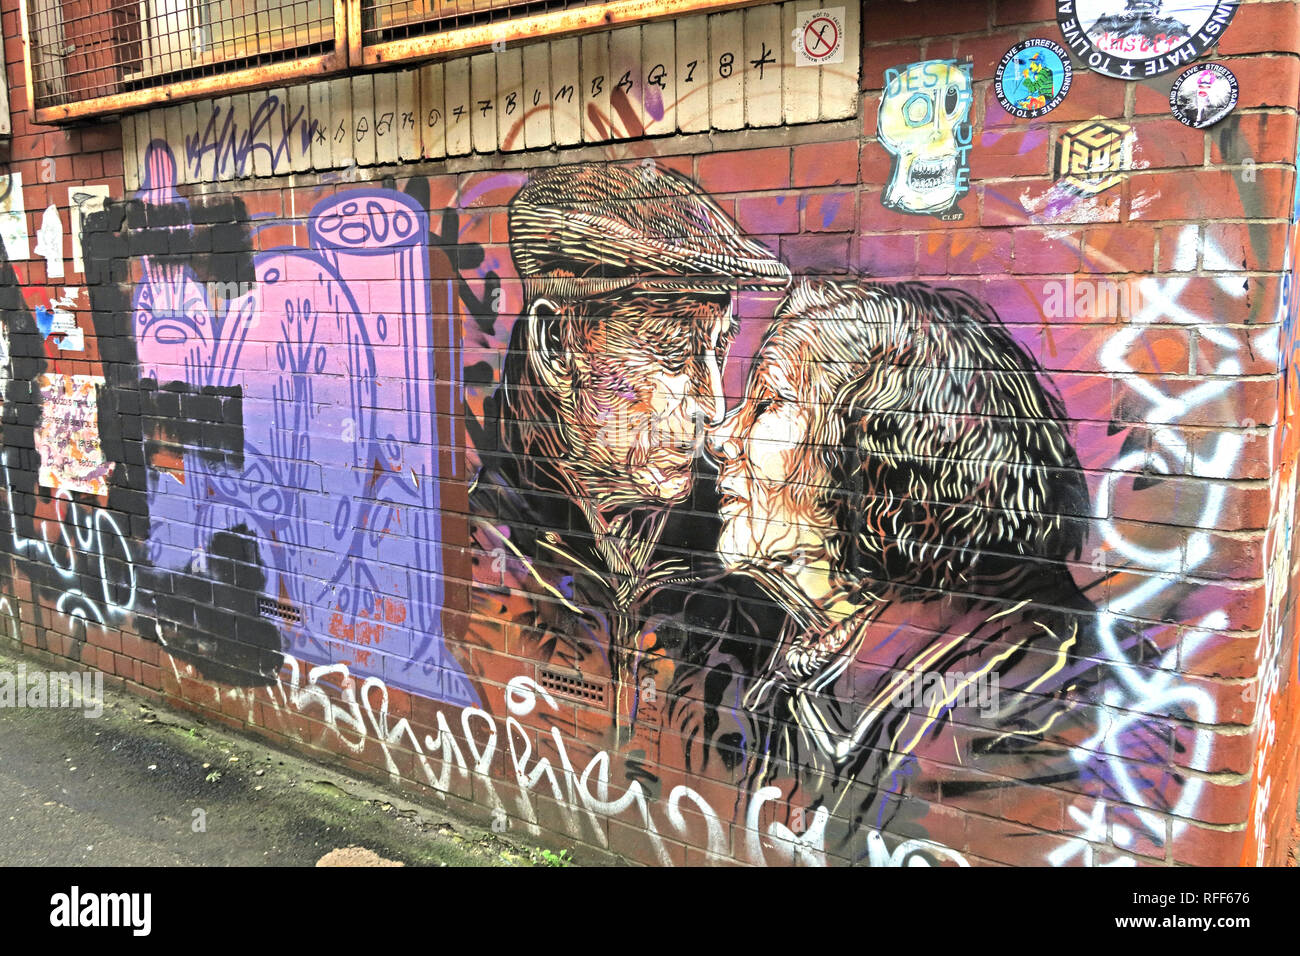 Two old people kissing, art work, Newton St, Northern Quarter, Manchester, M1, England, UK - Stock Image